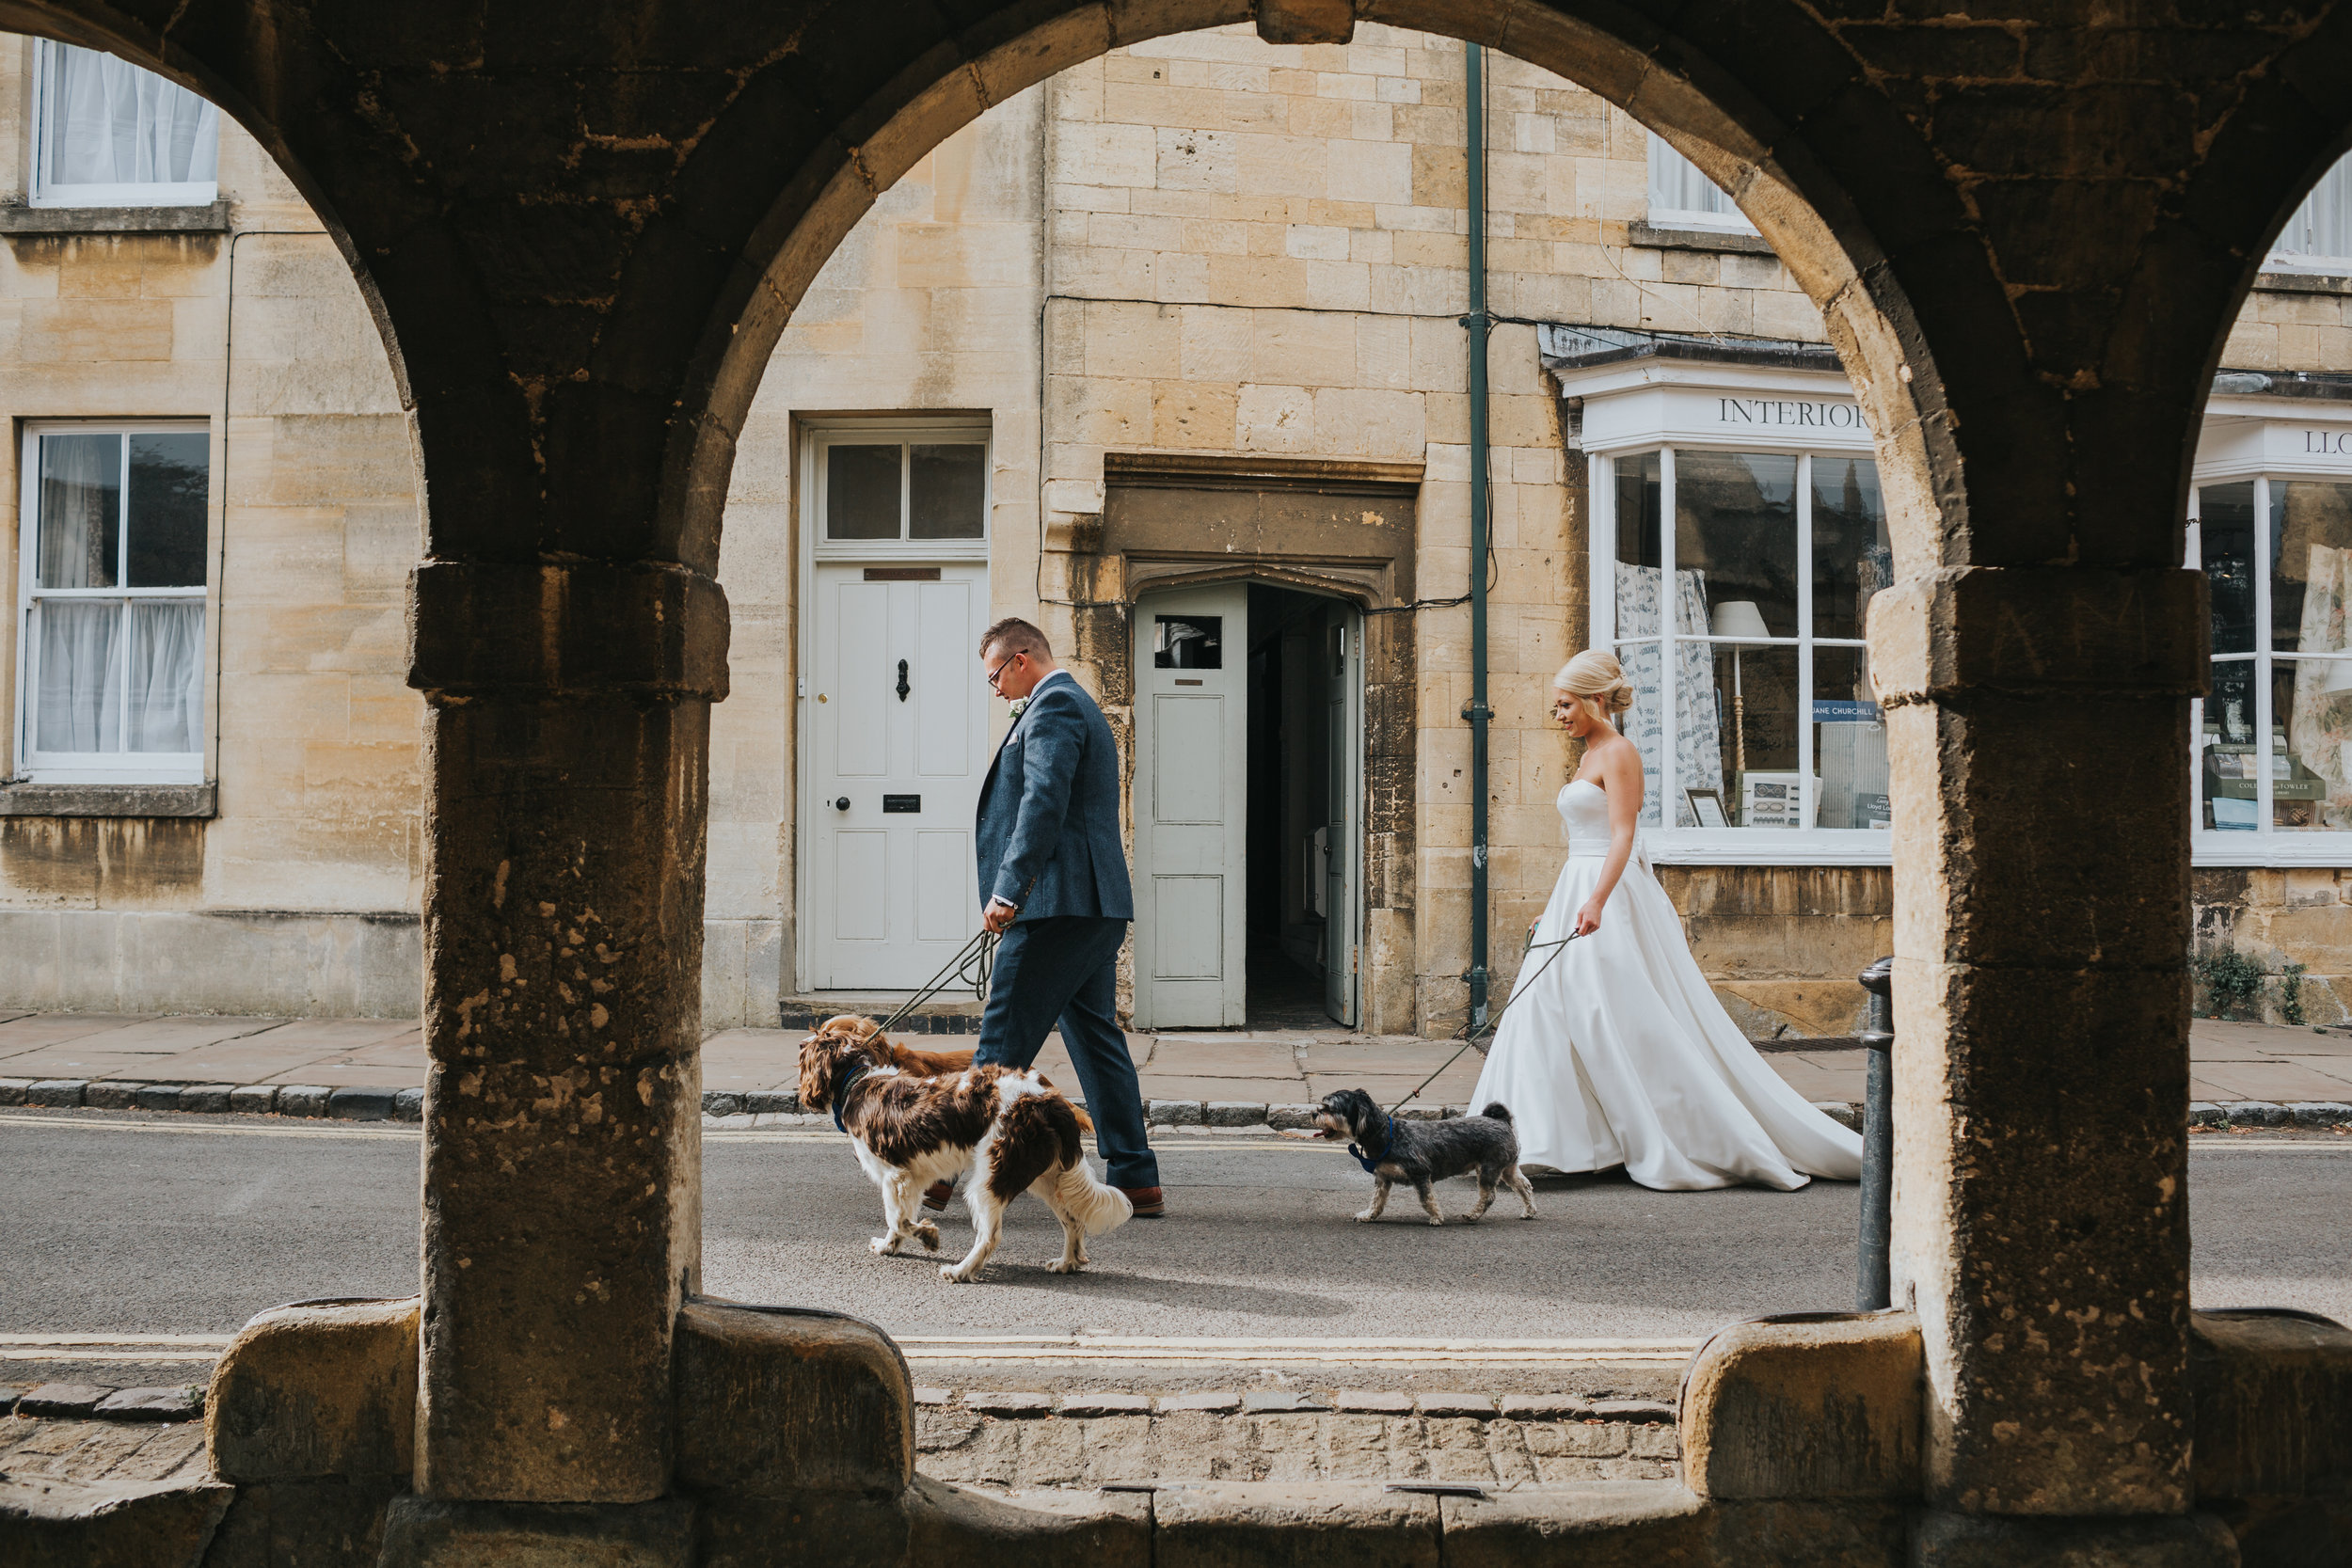 Bride and Groom walk their dogs under arches.